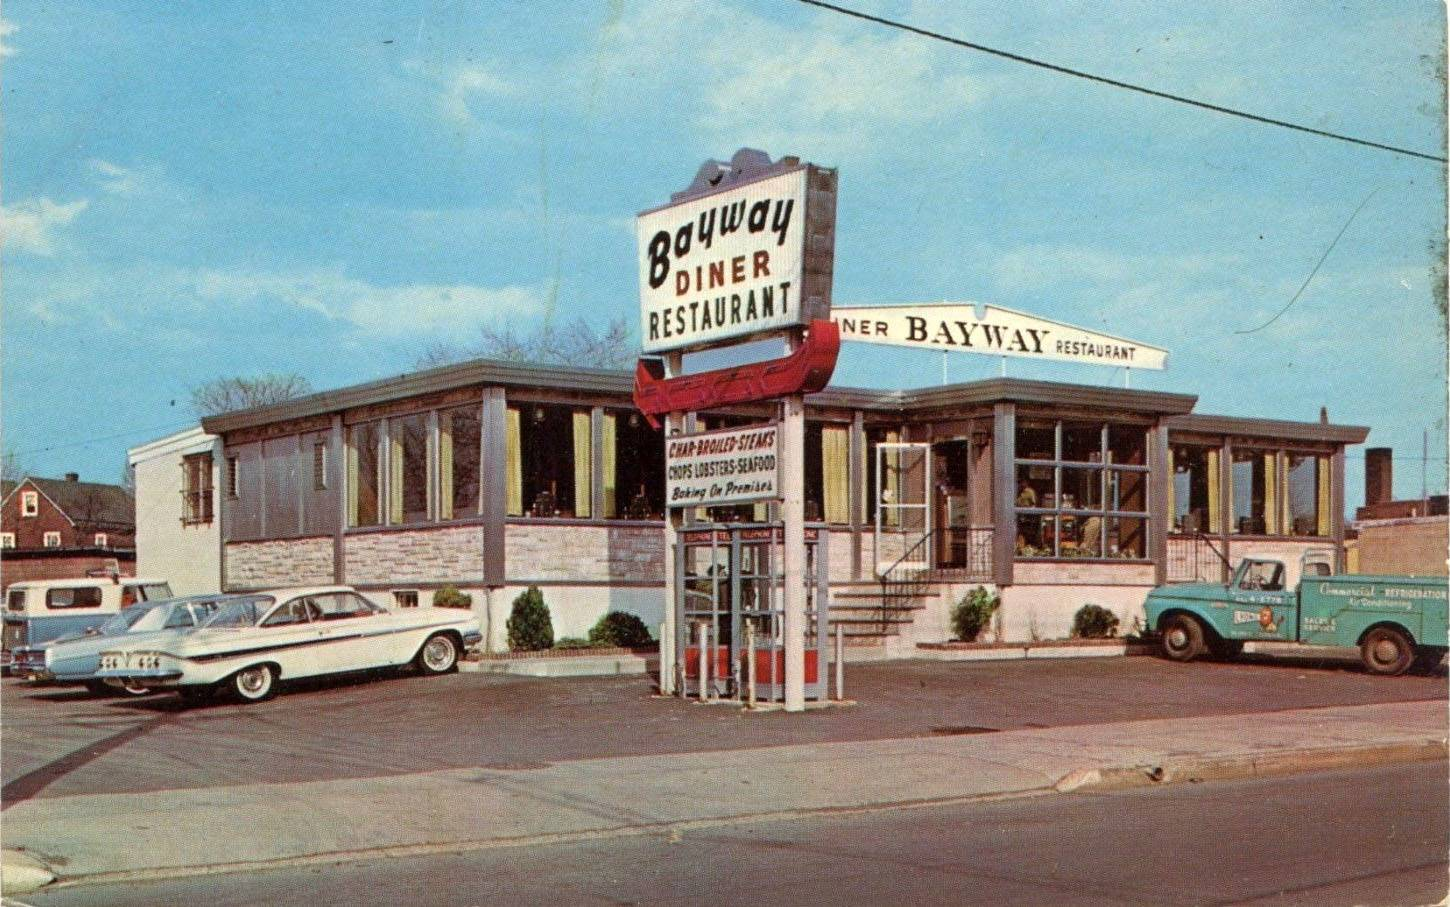 Bayway Diner & Restaurant - ELIZABETH NJ - c.1950